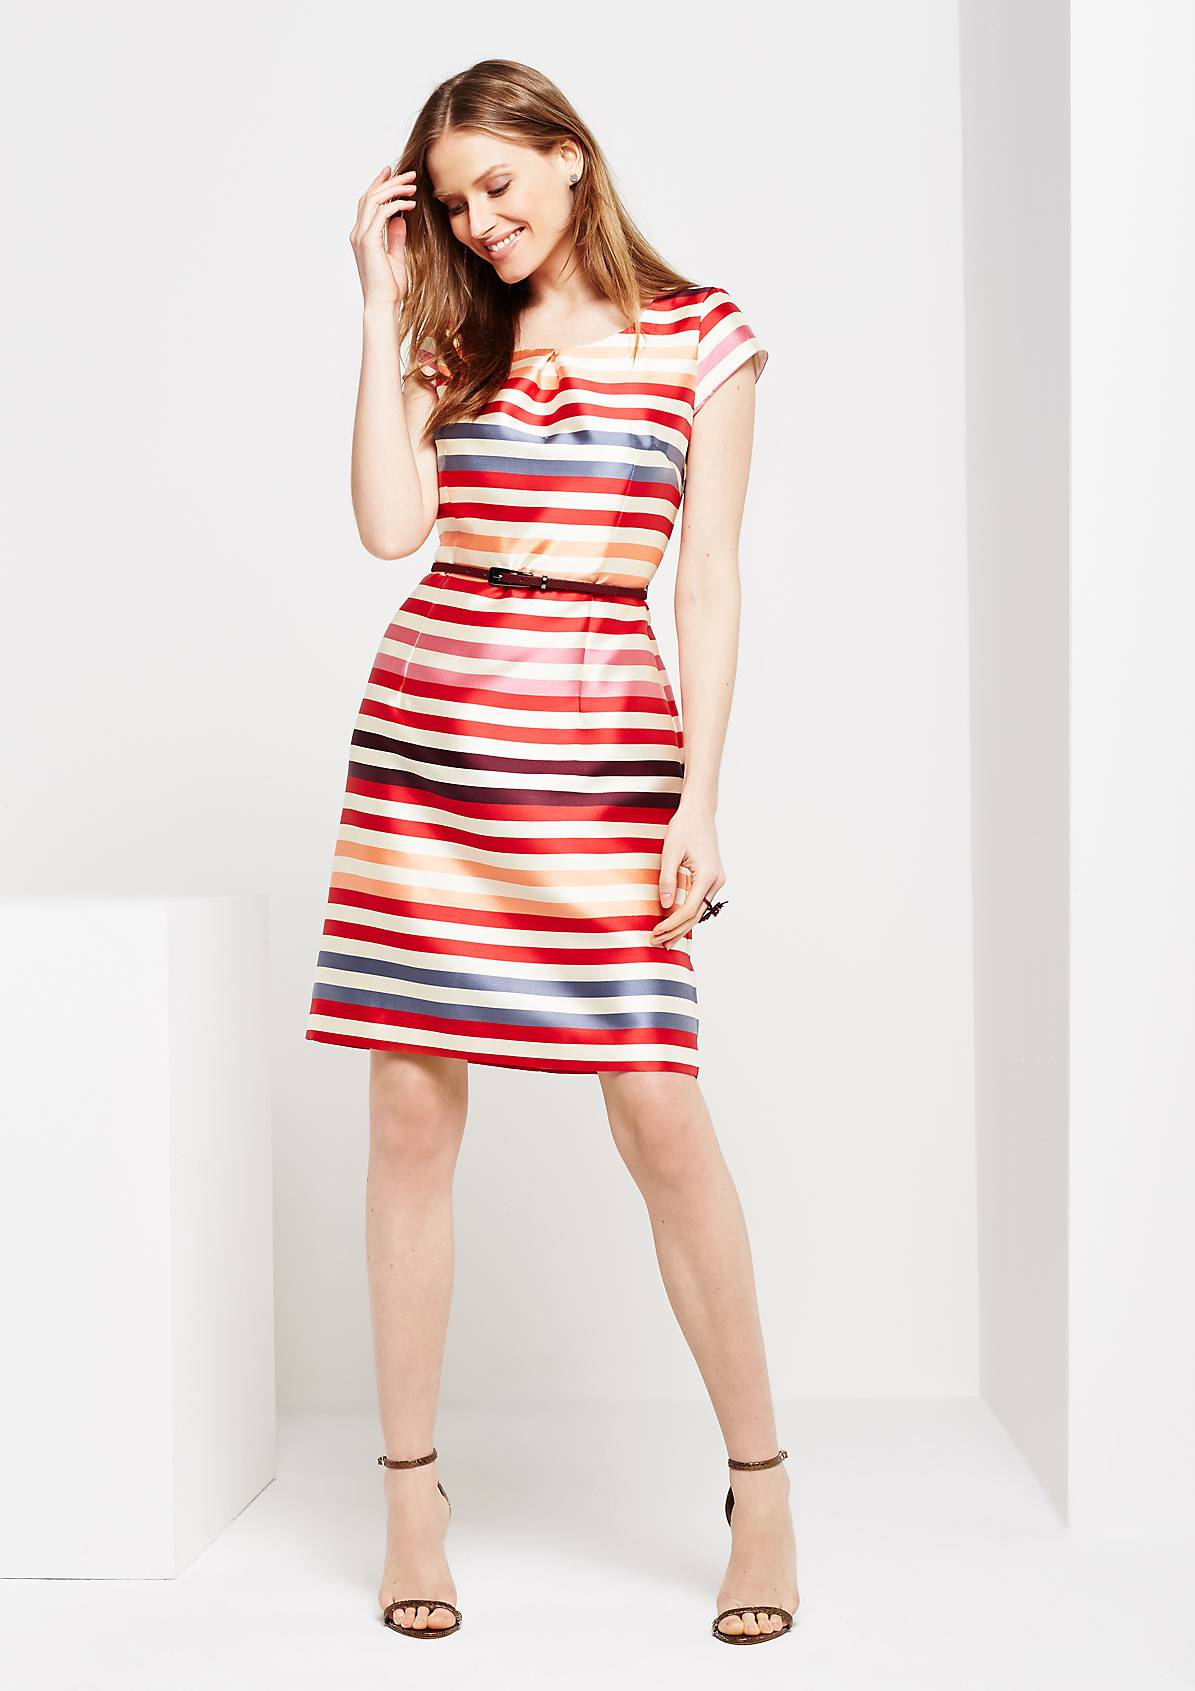 81704823912 freizeitkleid fashion mode comma online store shiny sheath dress with a colourful striped pattern from comma ombrellifo Choice Image